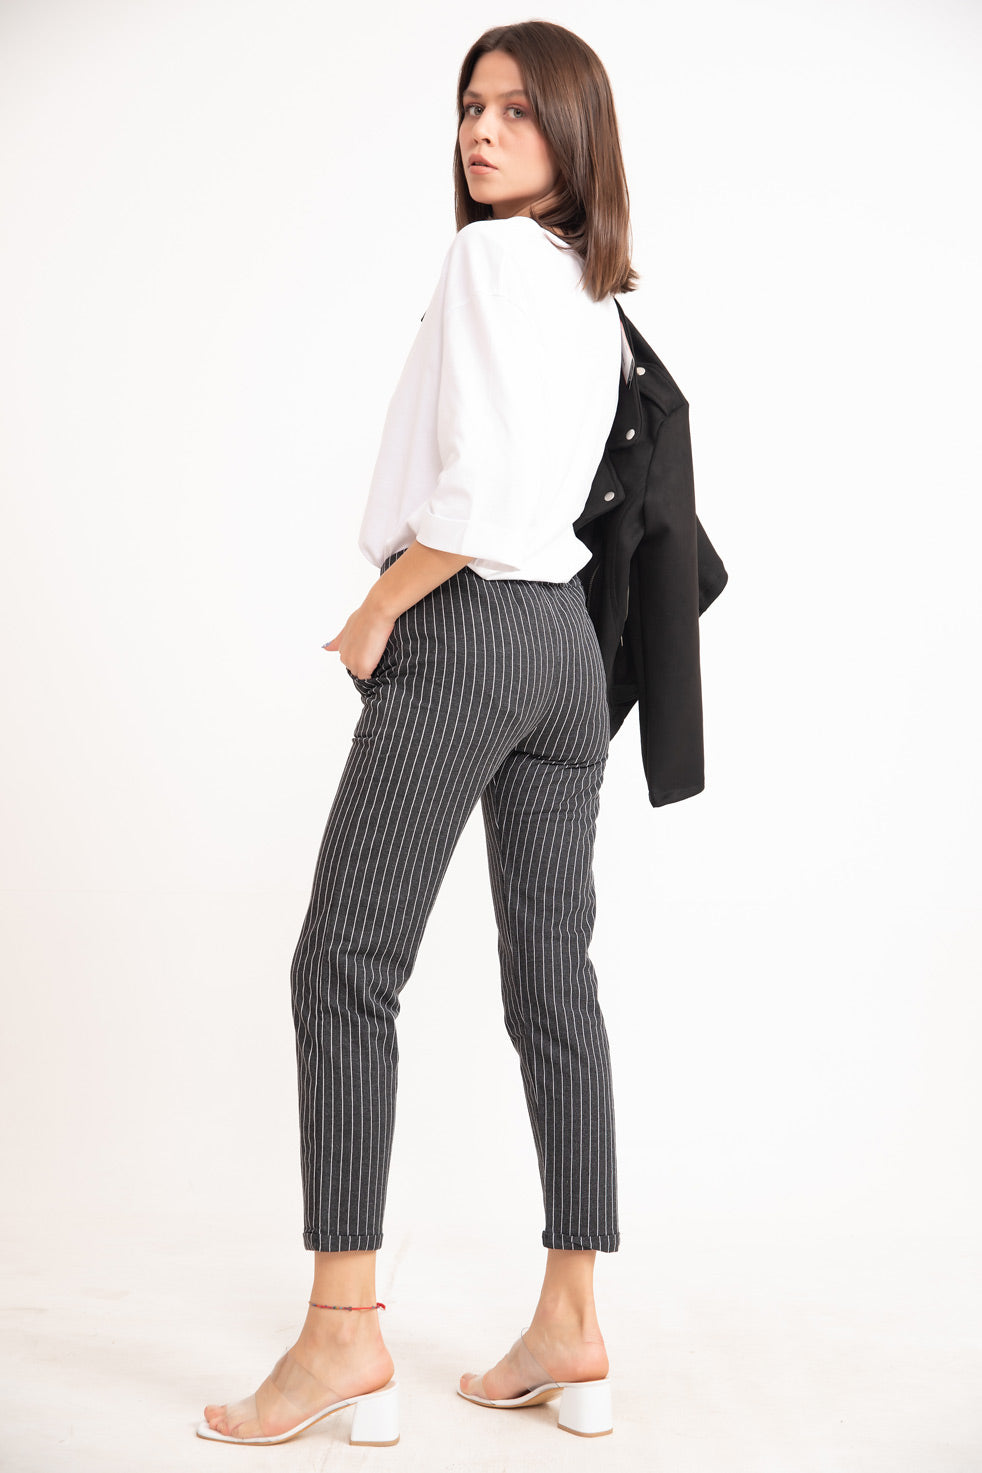 Women's Tie Waist Striped Black Carrot Pants